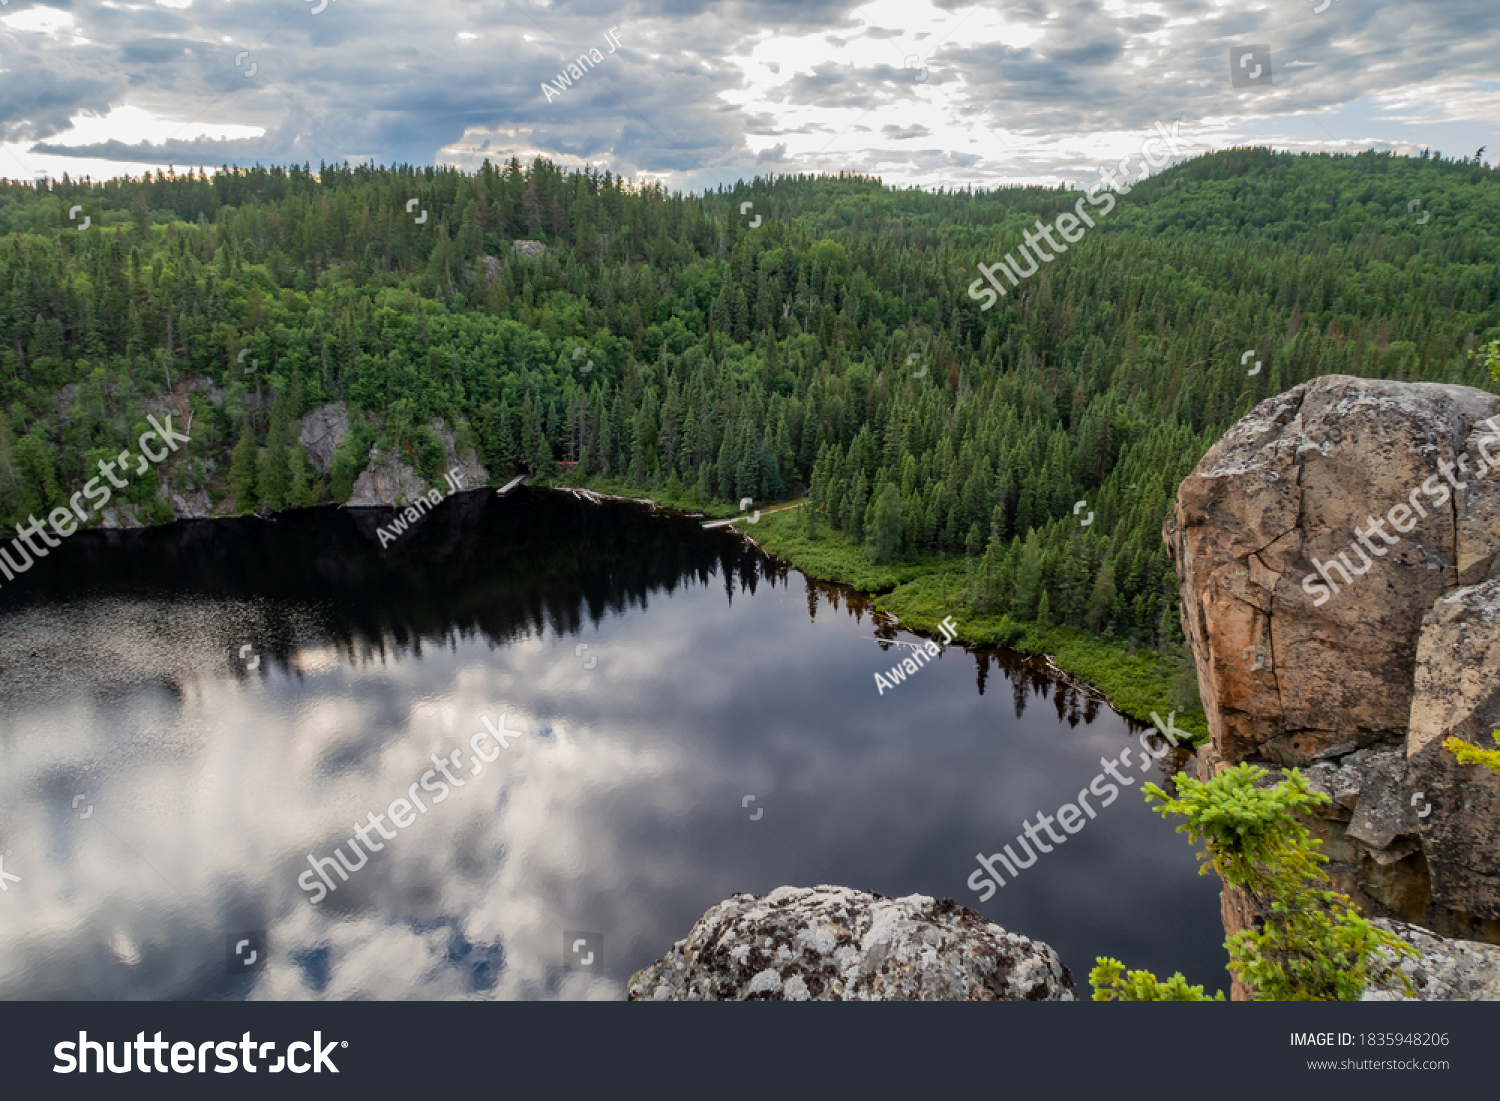 stock-photo-top-view-of-a-lake-surrounde